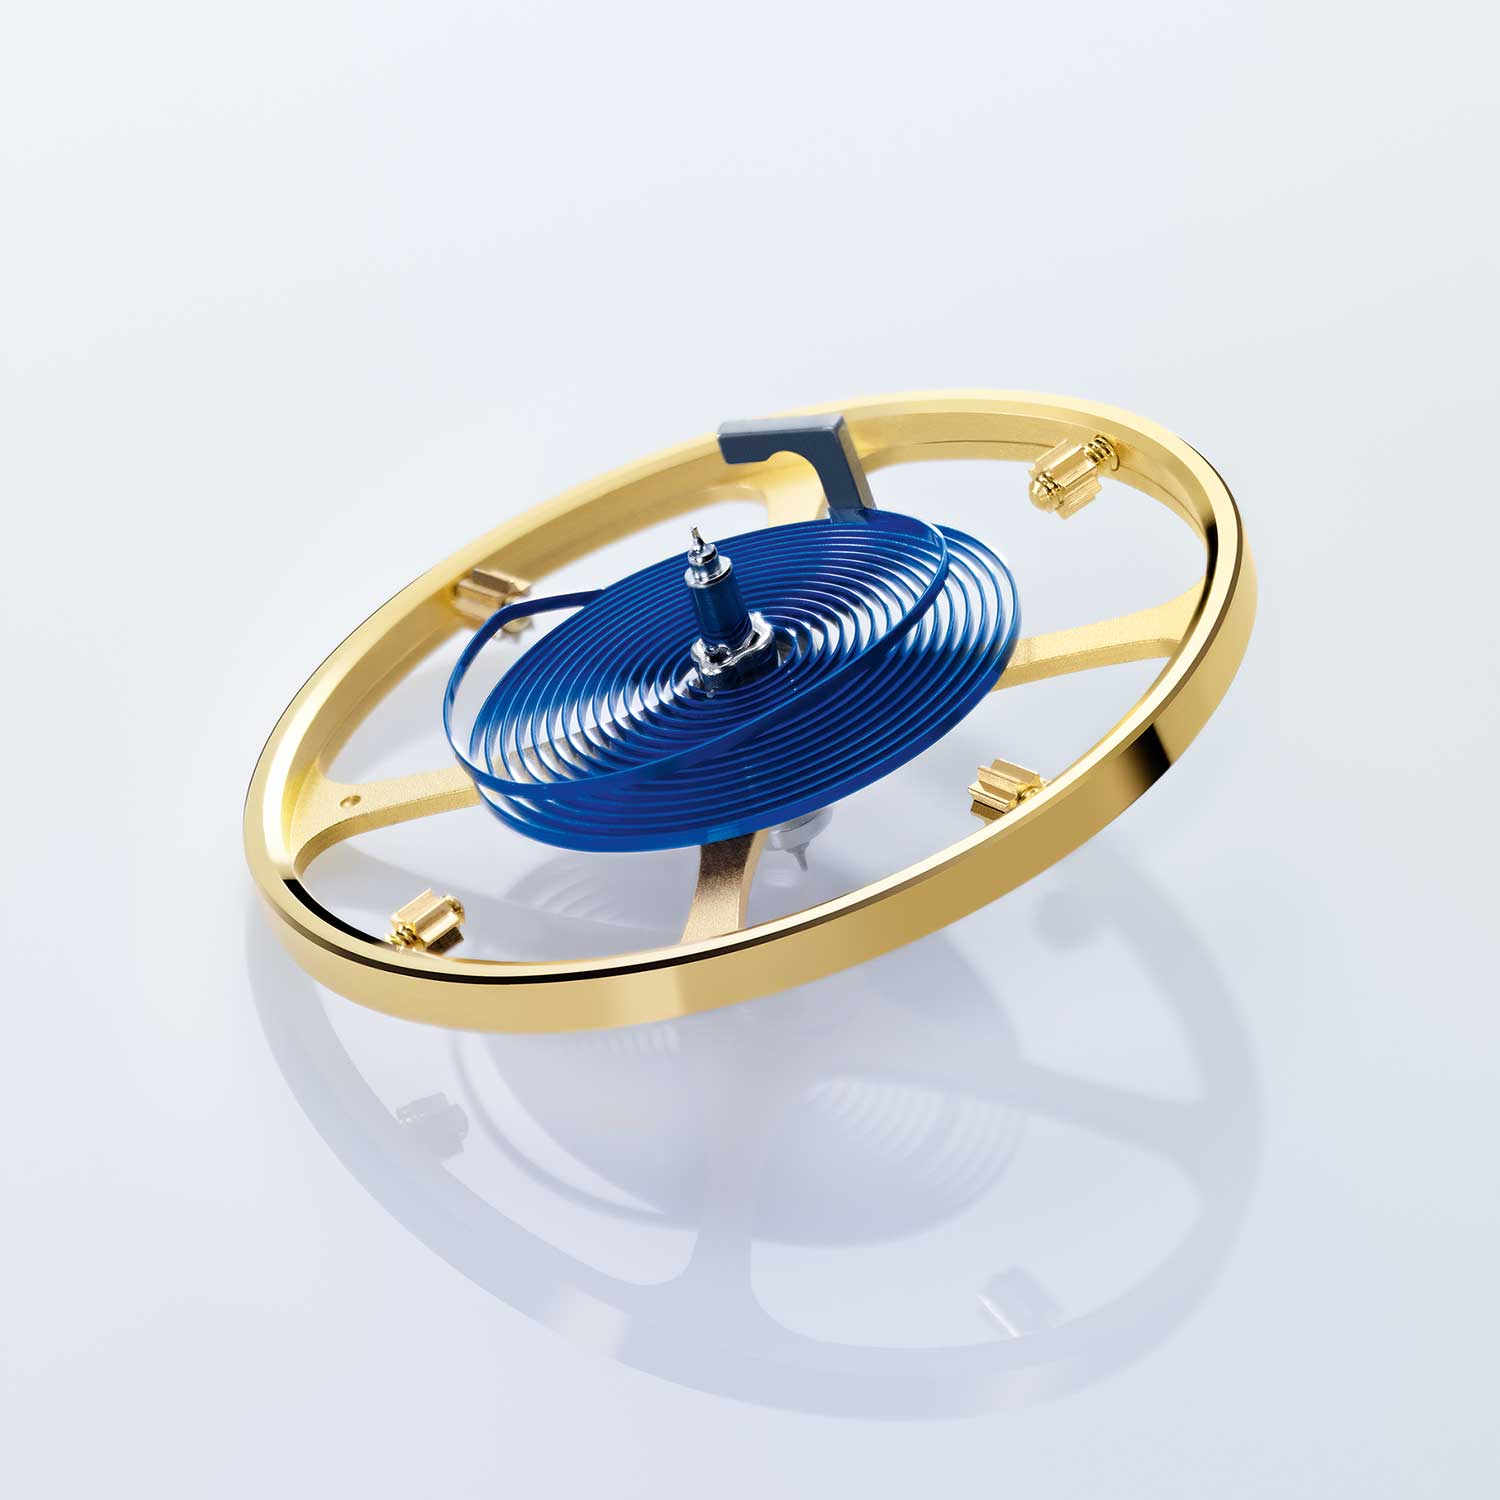 Insensitive to magnetic fields, the Rolex Parachrom hairspring offers great stability against temperature variations and is 10 times more precise than a traditional hairspring in case of shocks.